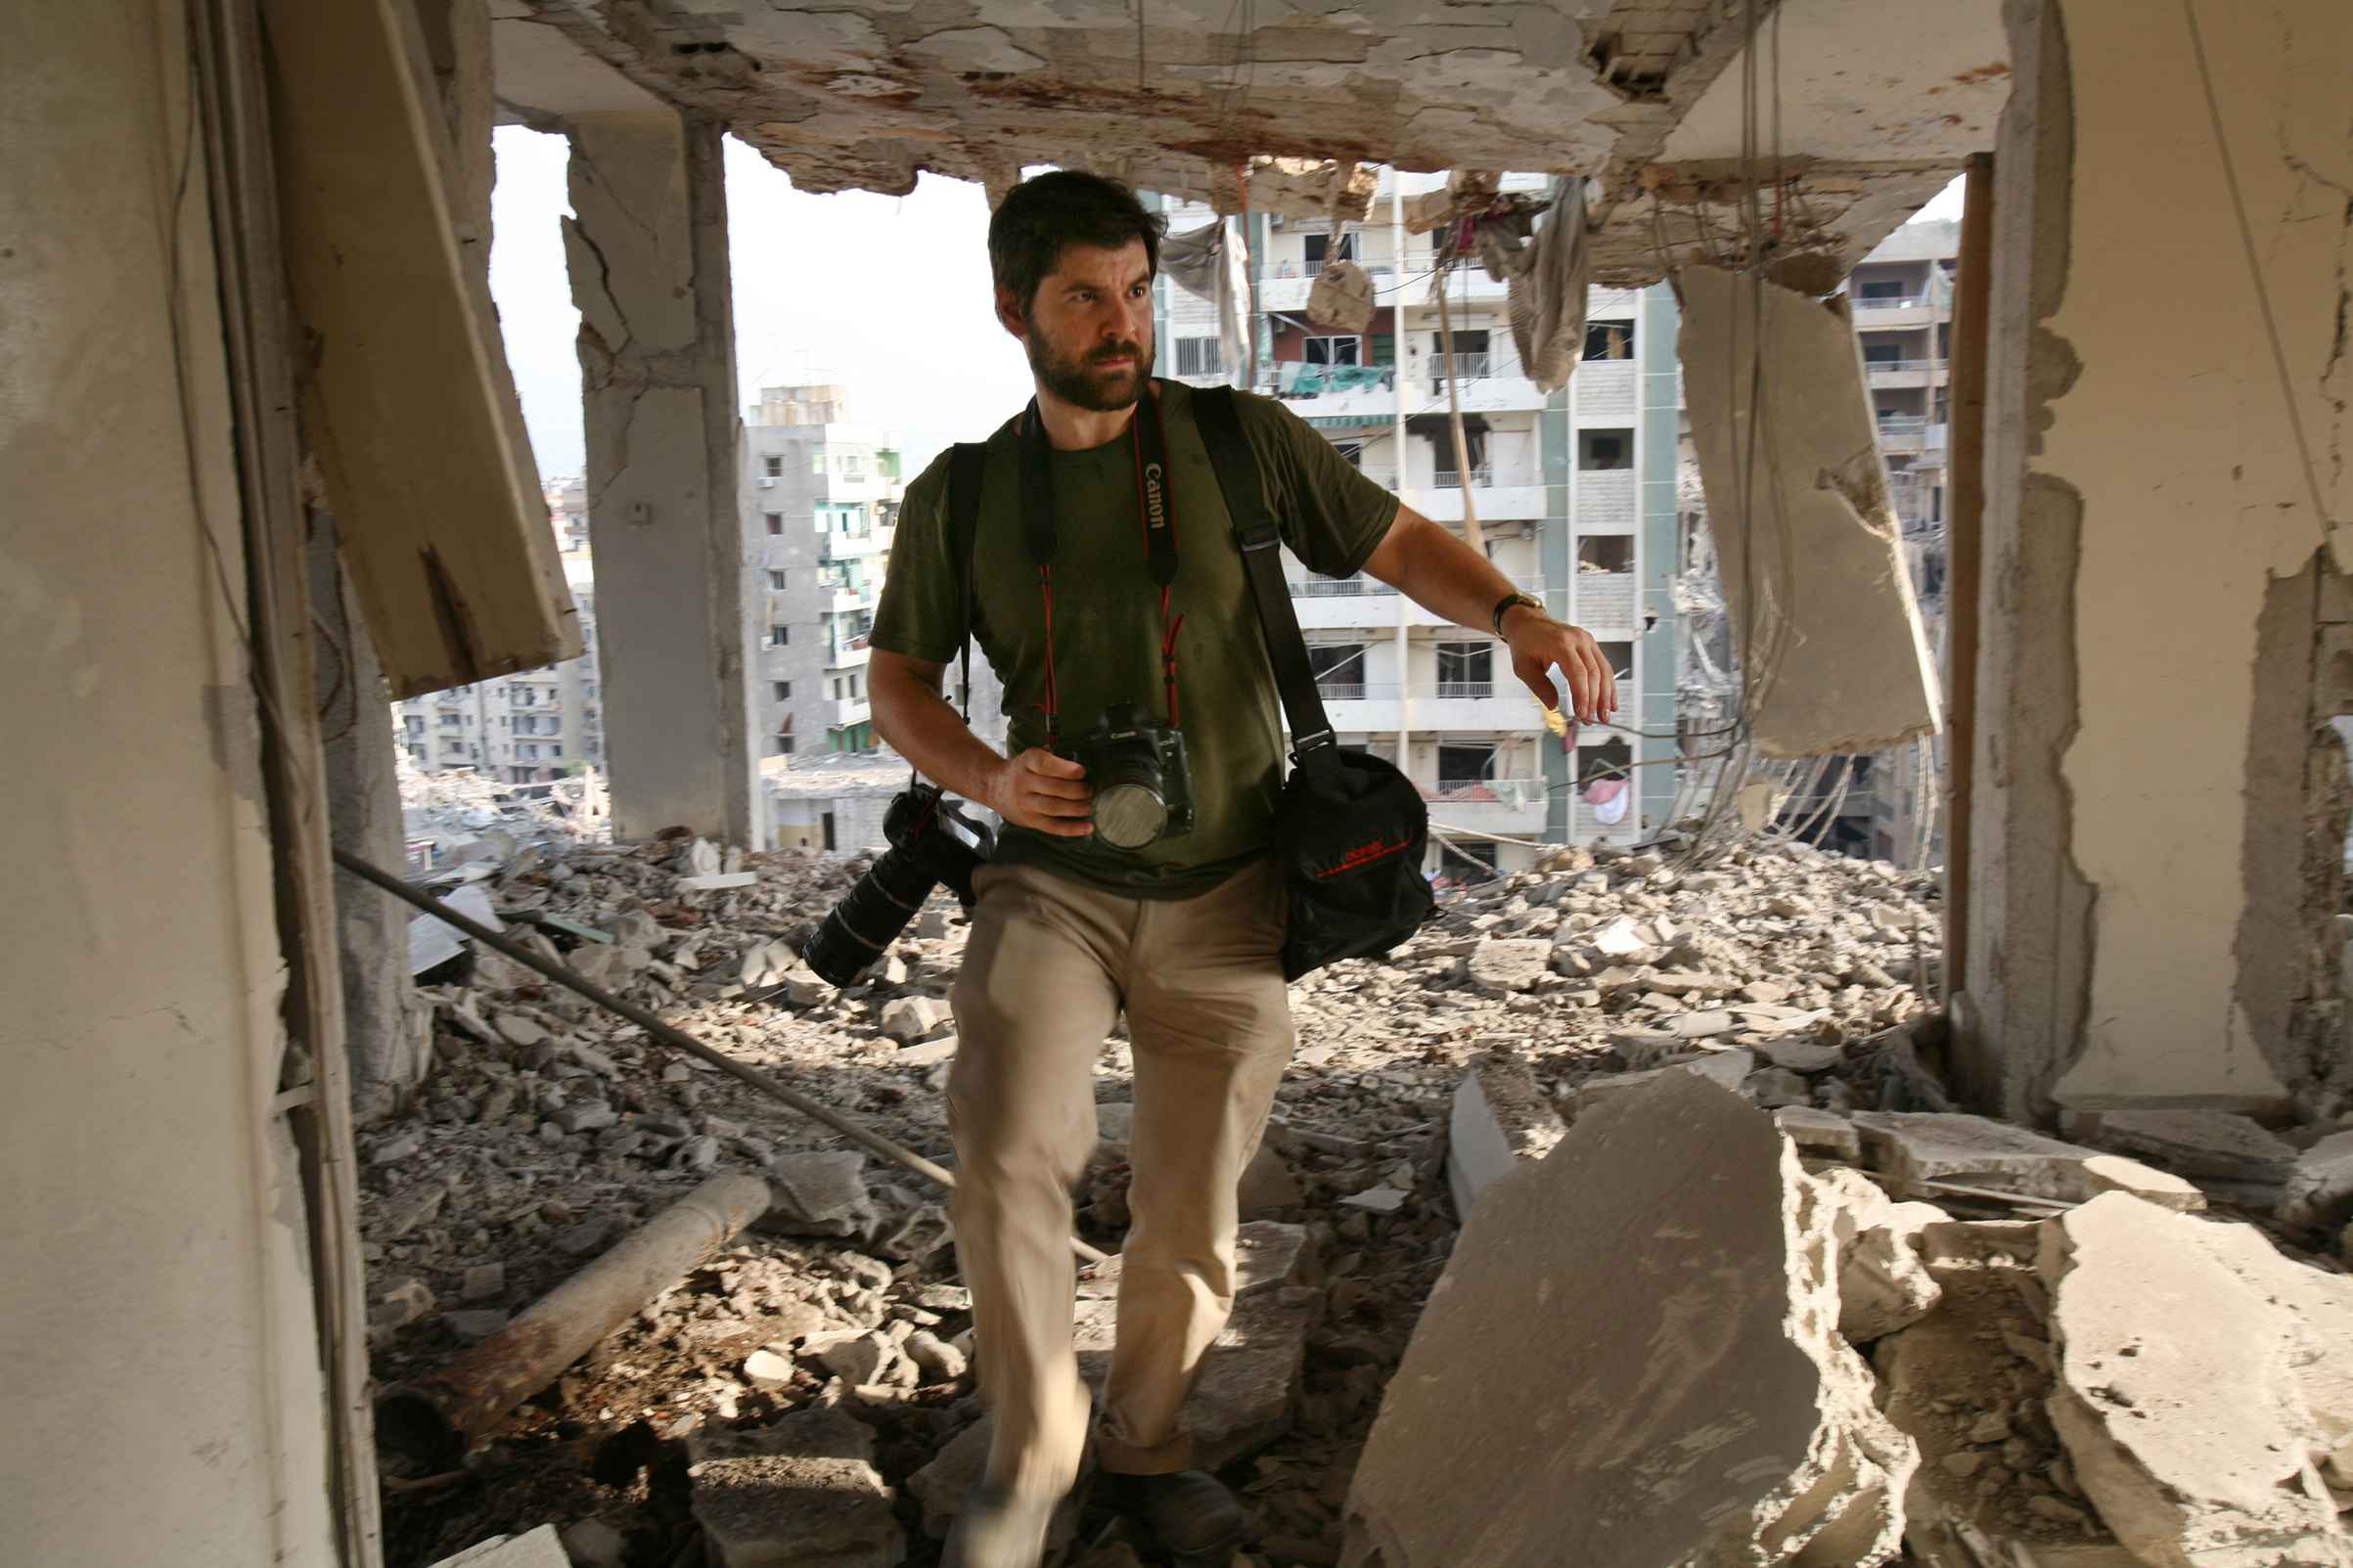 Getty Images photographer Chris Hondros walks through the ruins of a building in southern Beirut on Aug. 21, 2006. Hondros was killed while on assignment in Misrata, Libya, on April 20, 2011.